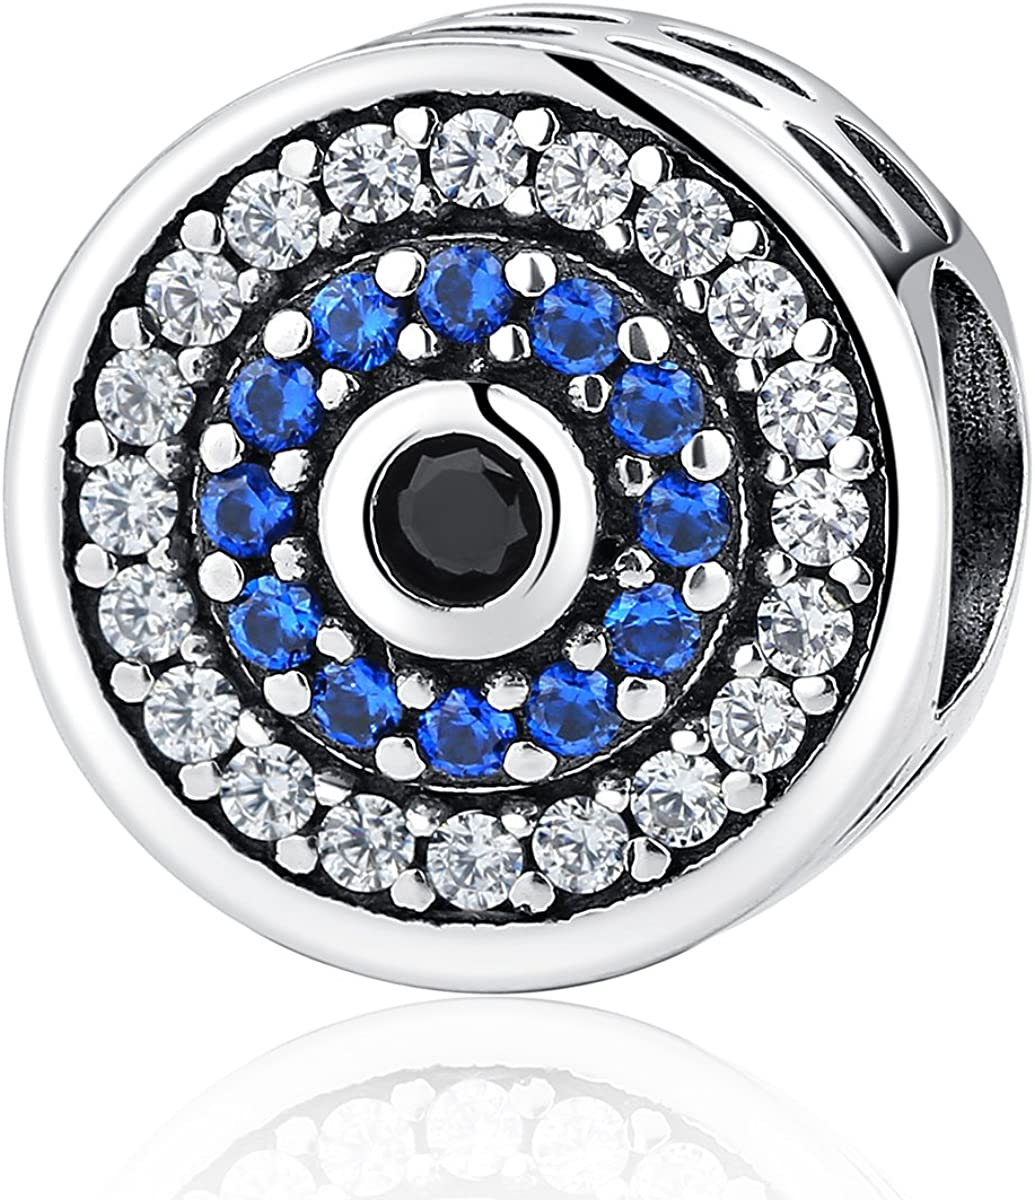 Amazon Com Eternalll Evil Eye Charms Authentic 925 Sterling Silver Fit Pandora Charms Bracelets Blue Eyes Hand Beads Home Family Heart Love Spacer Charms Beads For Bracelet Or Necklace Jewelry